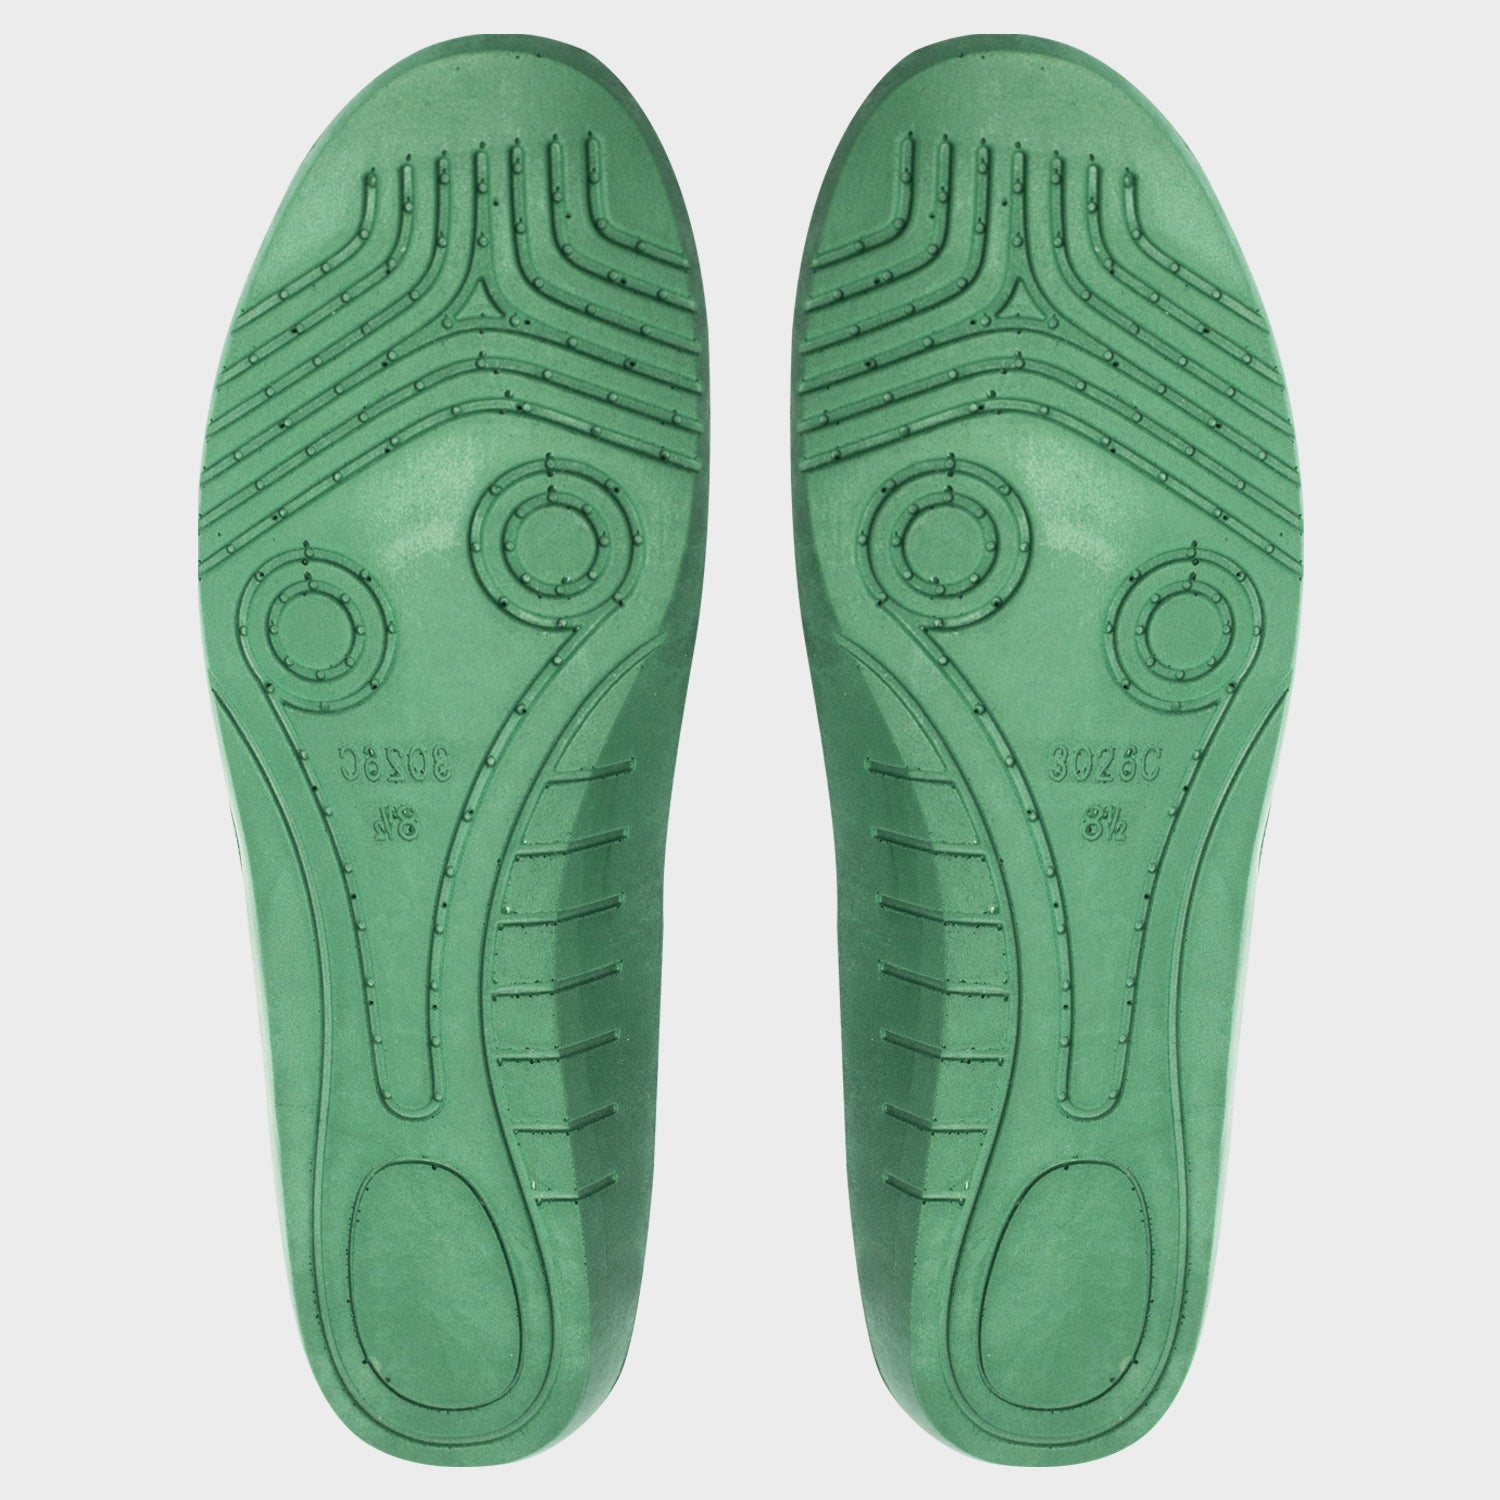 Dr. Kong Anti-Static Rubber insole